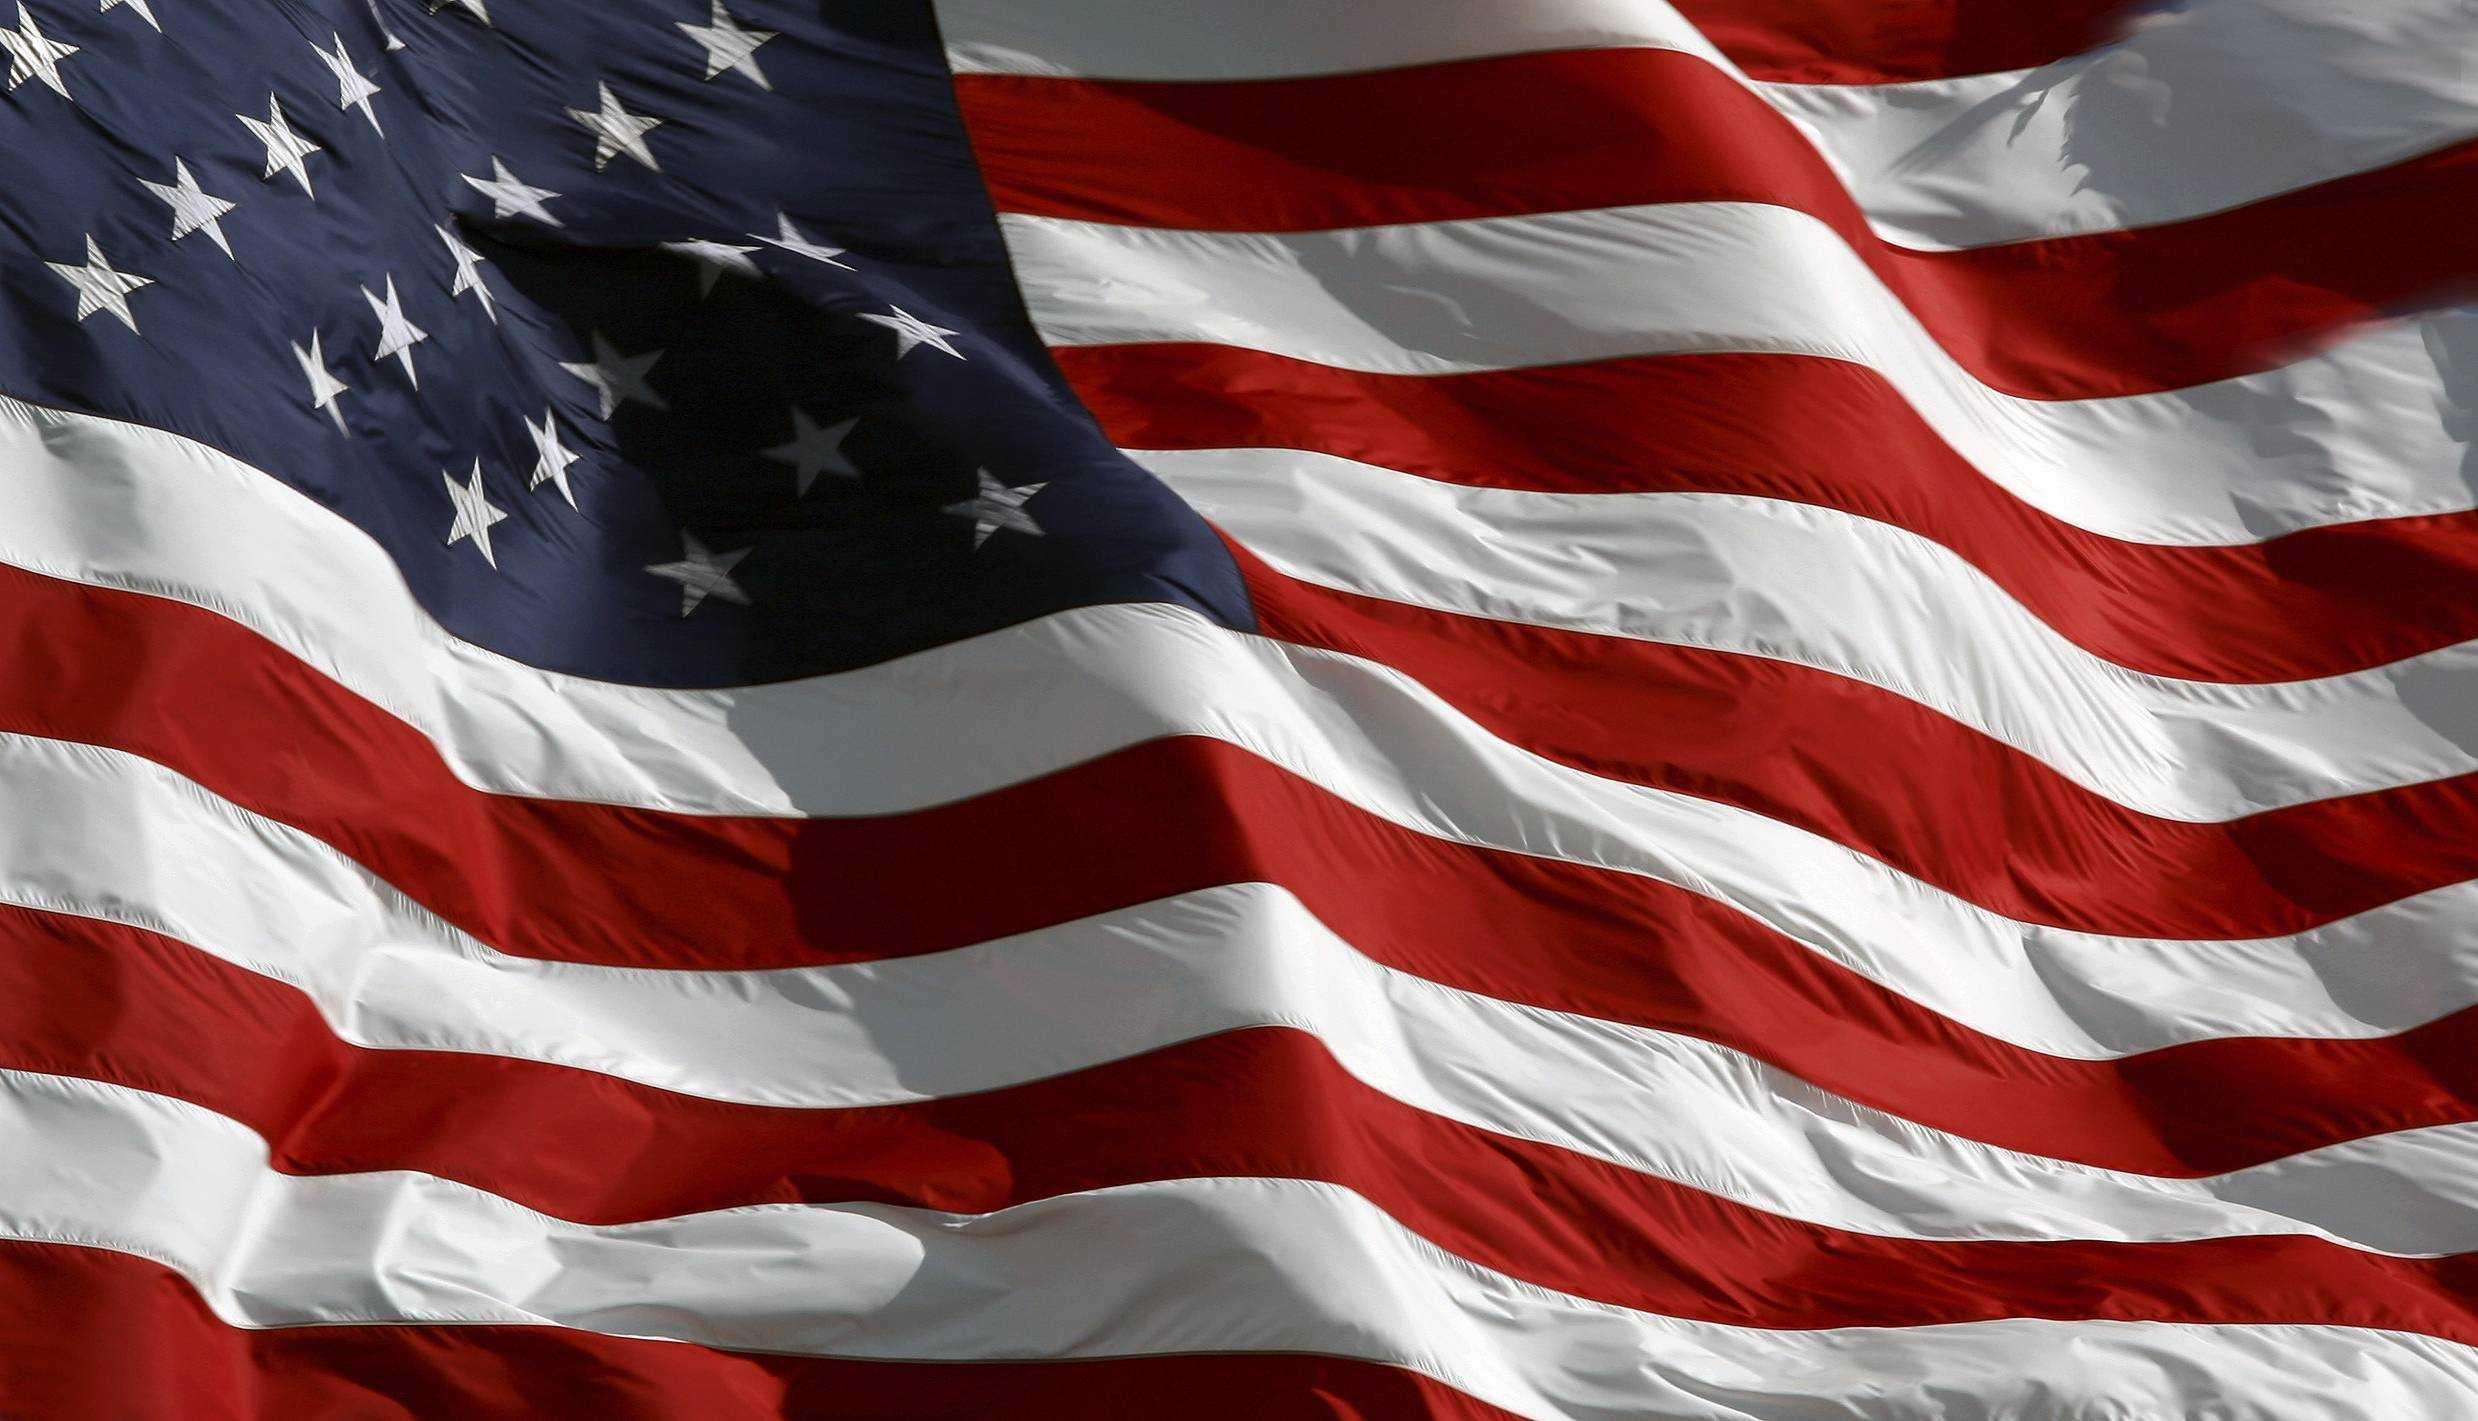 American Flag Download Backgrounds For Powerpoint Templates Intended For American Flag Powerpoint Template